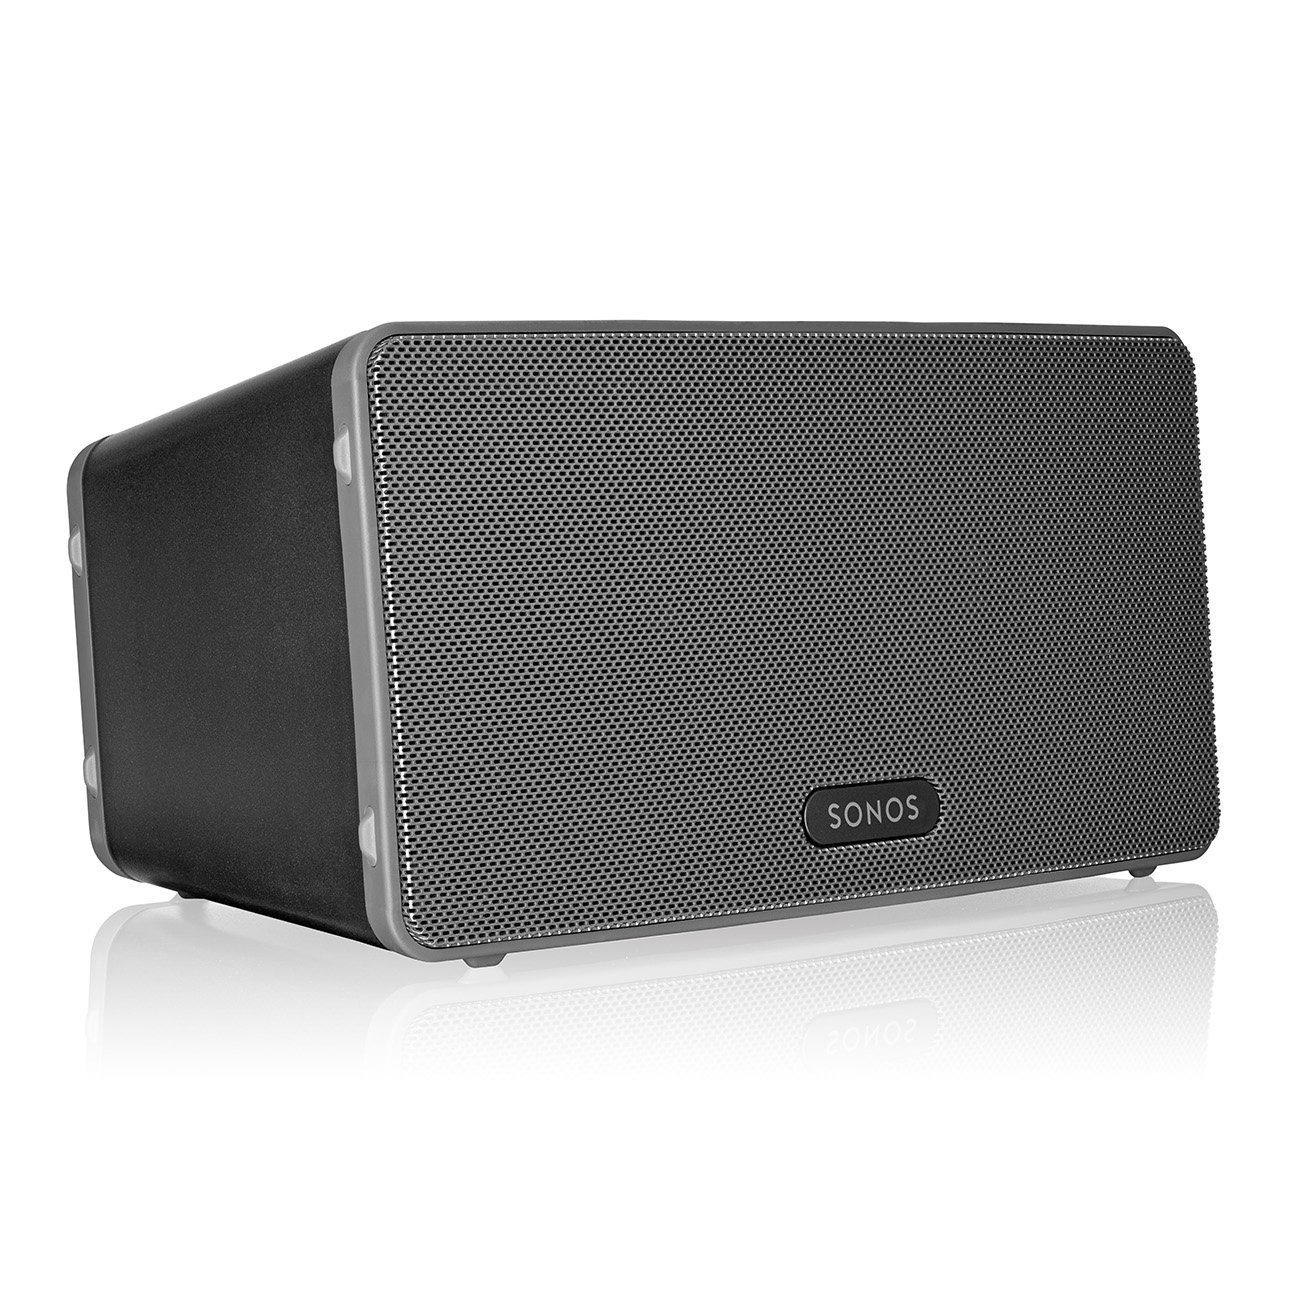 Sonos PLAY3 Mid-Sized Wireless Smart Speaker for Streaming Music